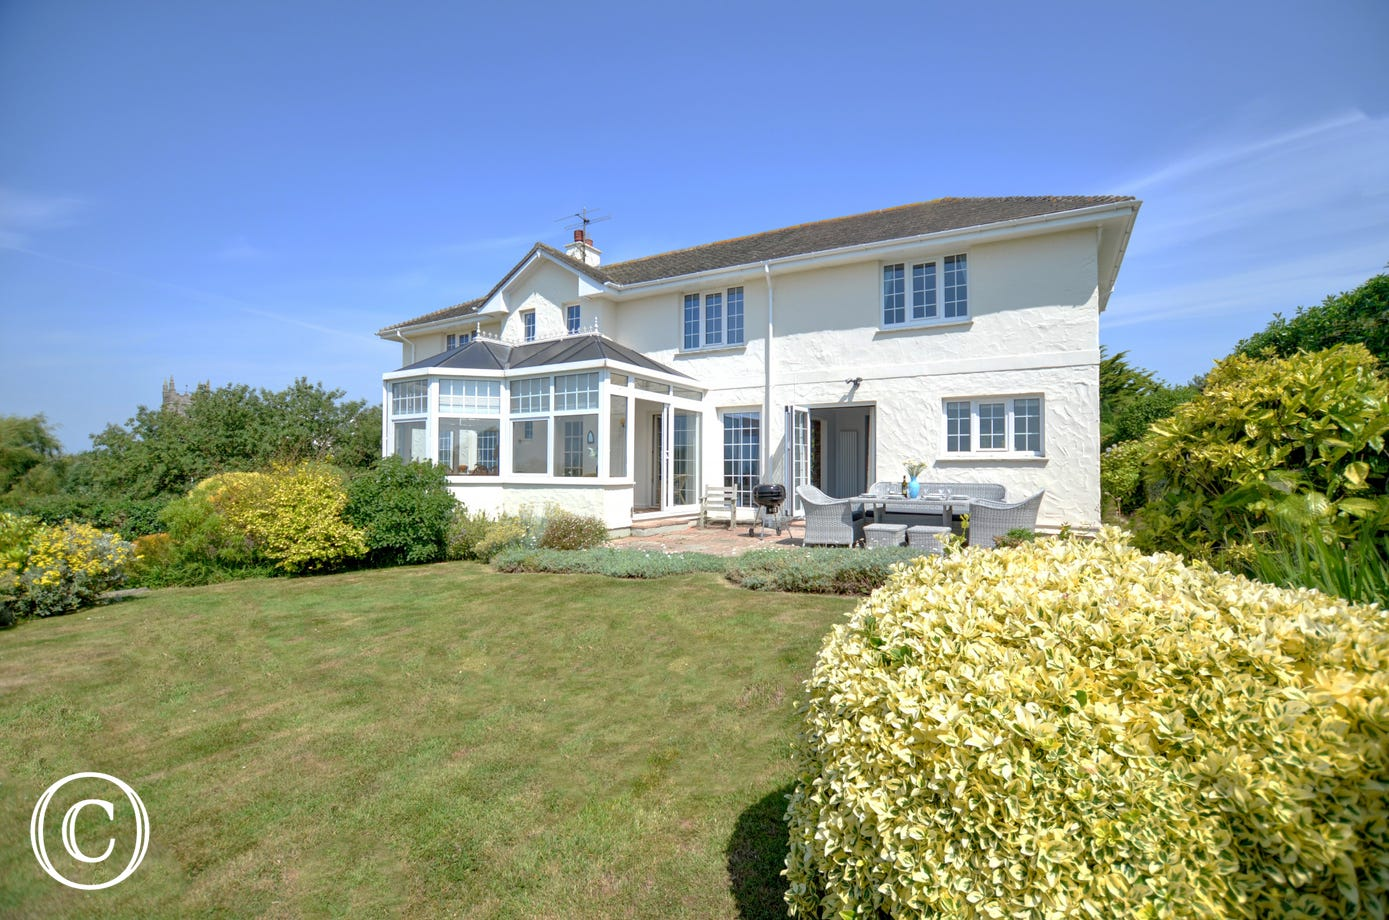 For a North Devon holiday home which has wonderful coastal panoramic views then look no further than Heanton Lodge